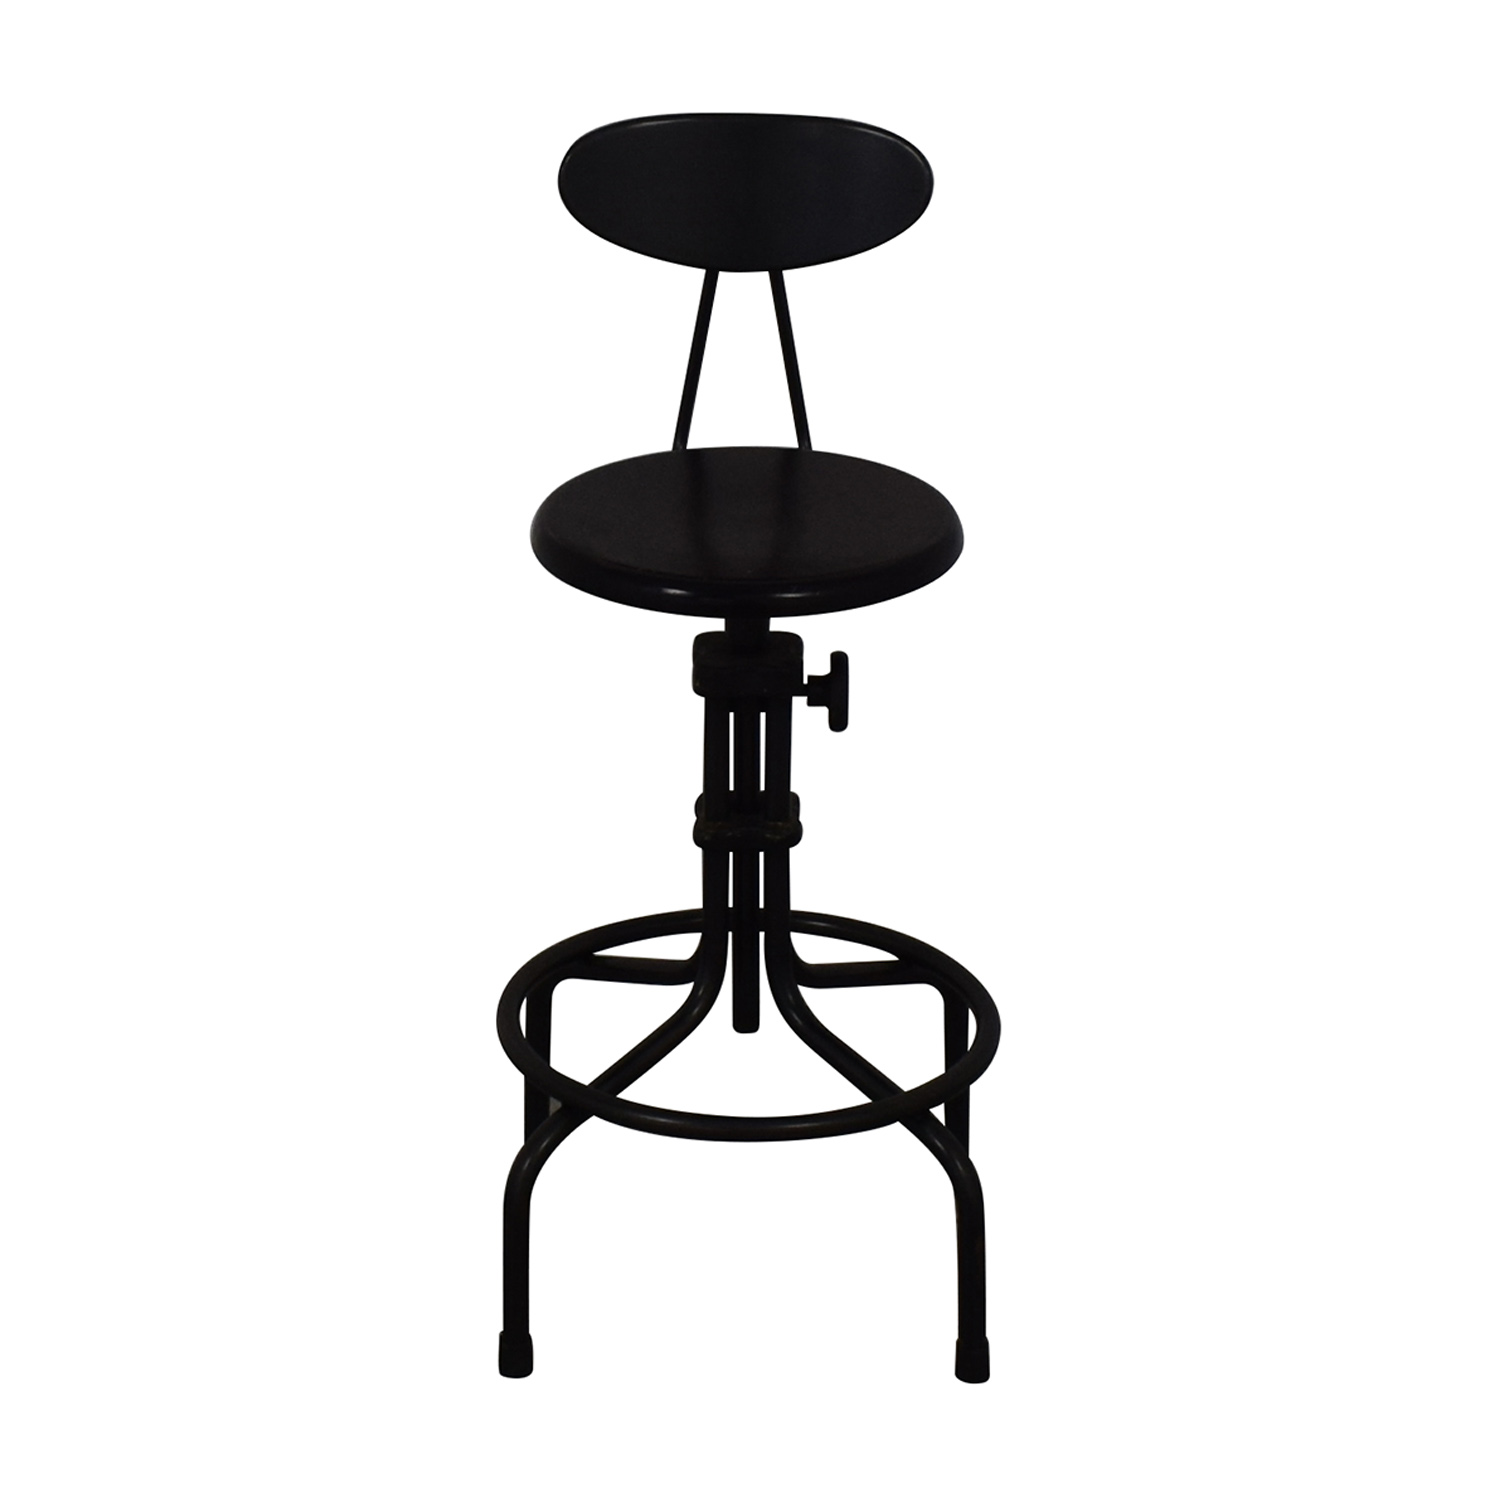 ABC Carpet & Home Industrial Stool / Chairs